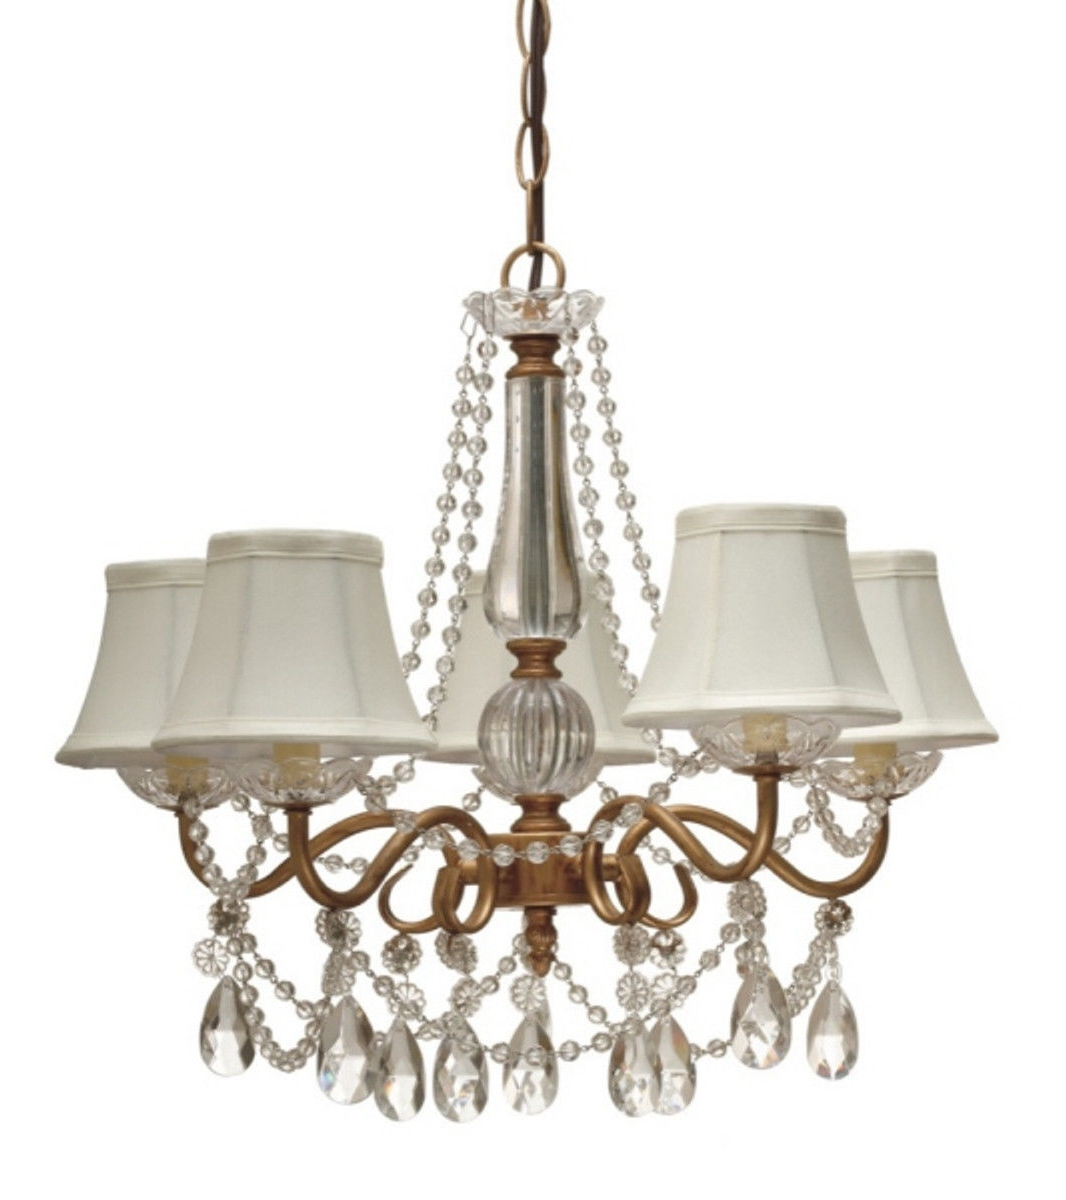 Trendy Crystal Gold Chandeliers Regarding Gold Arm & Crystals Chandelier 5 Silk Shades (View 8 of 20)